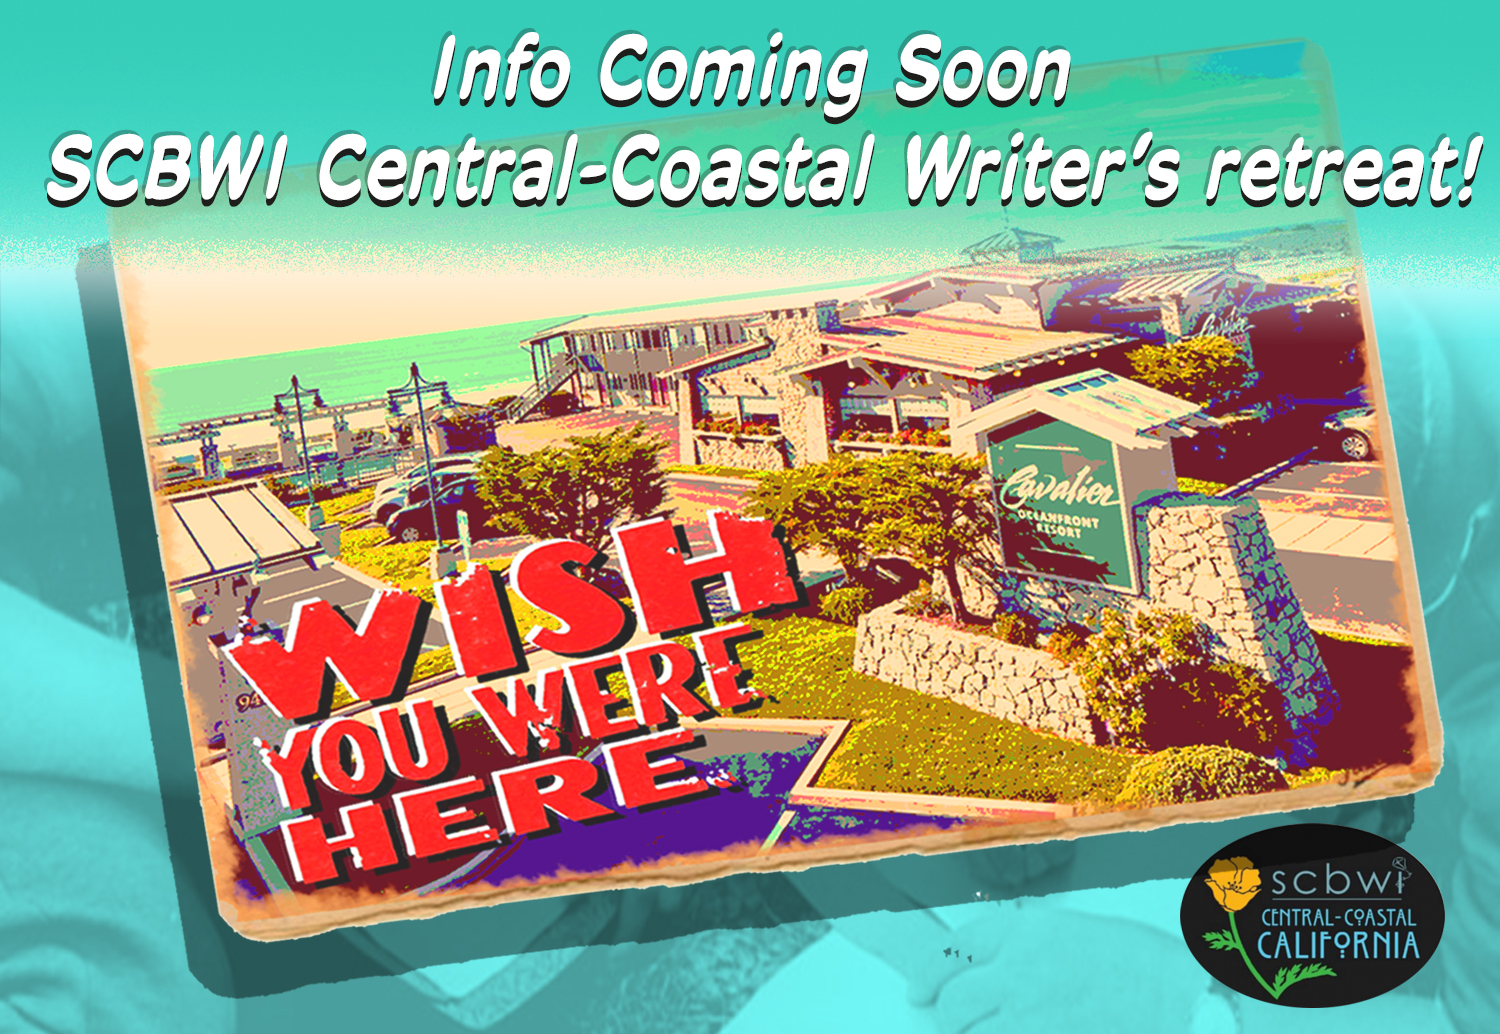 Check back for more information about the 2020 SCBWI Central-Coastal Writer's Retreat